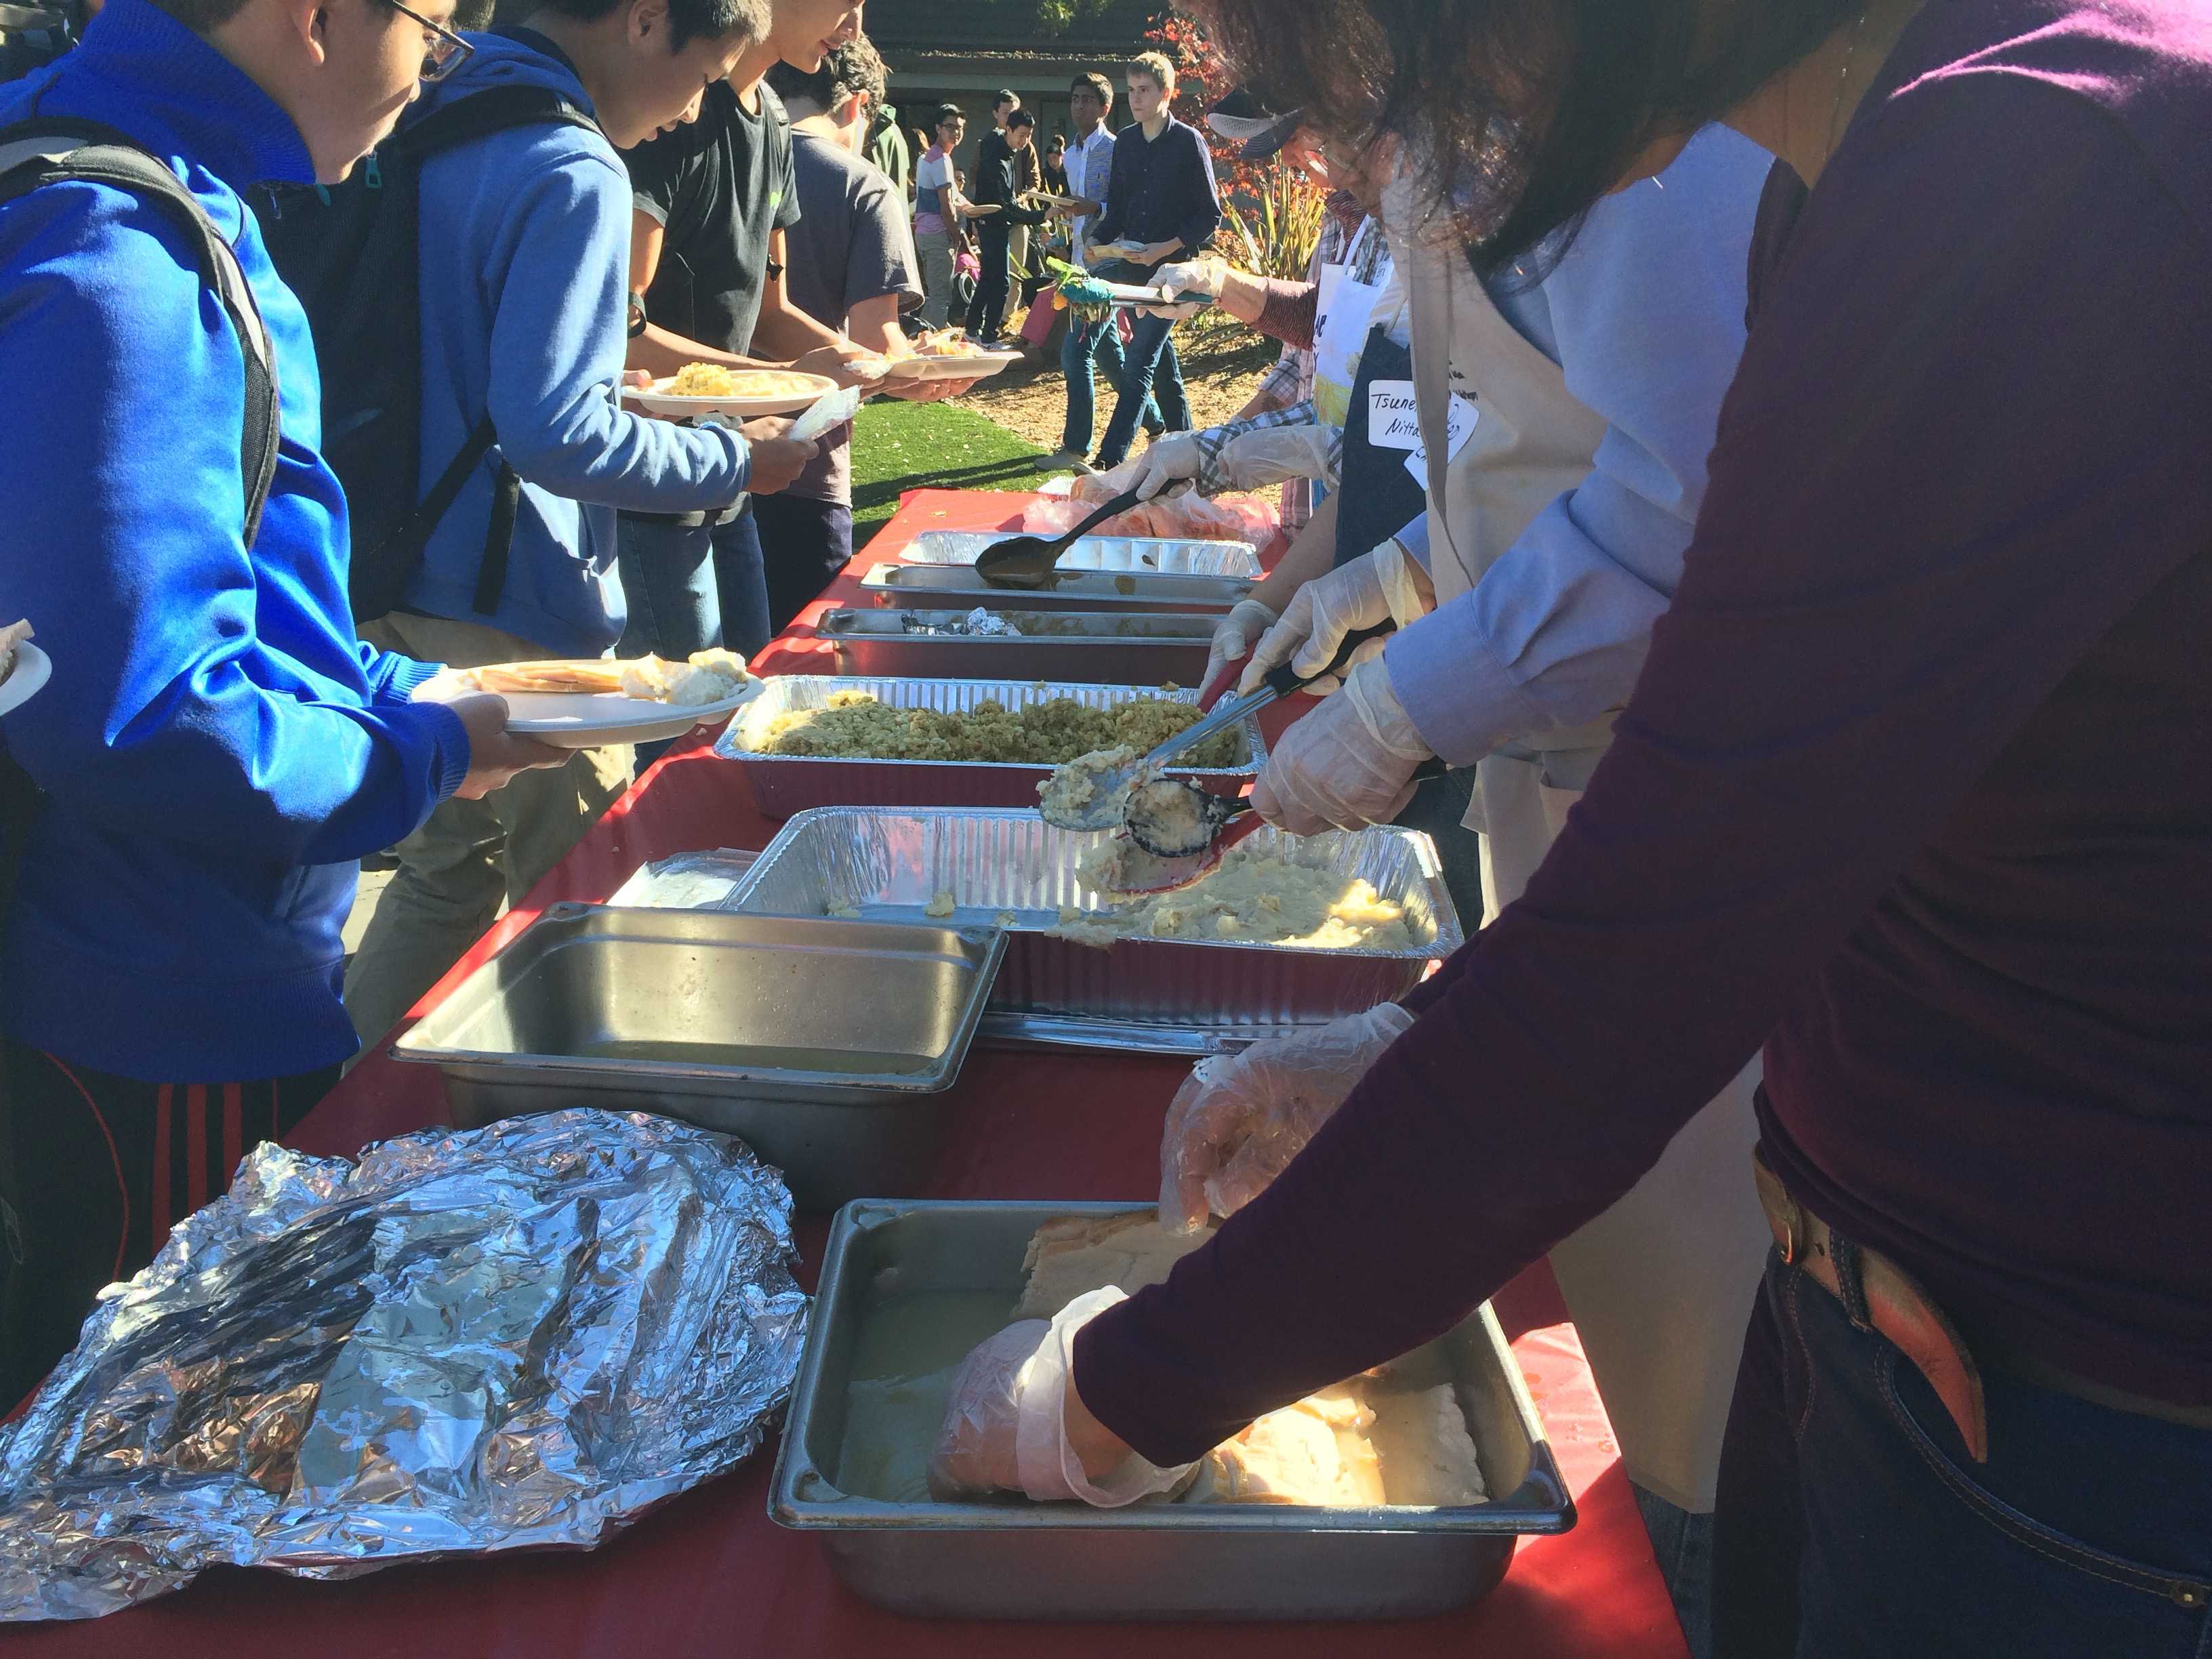 Snapshots: School gathers for annual Turkey Feast